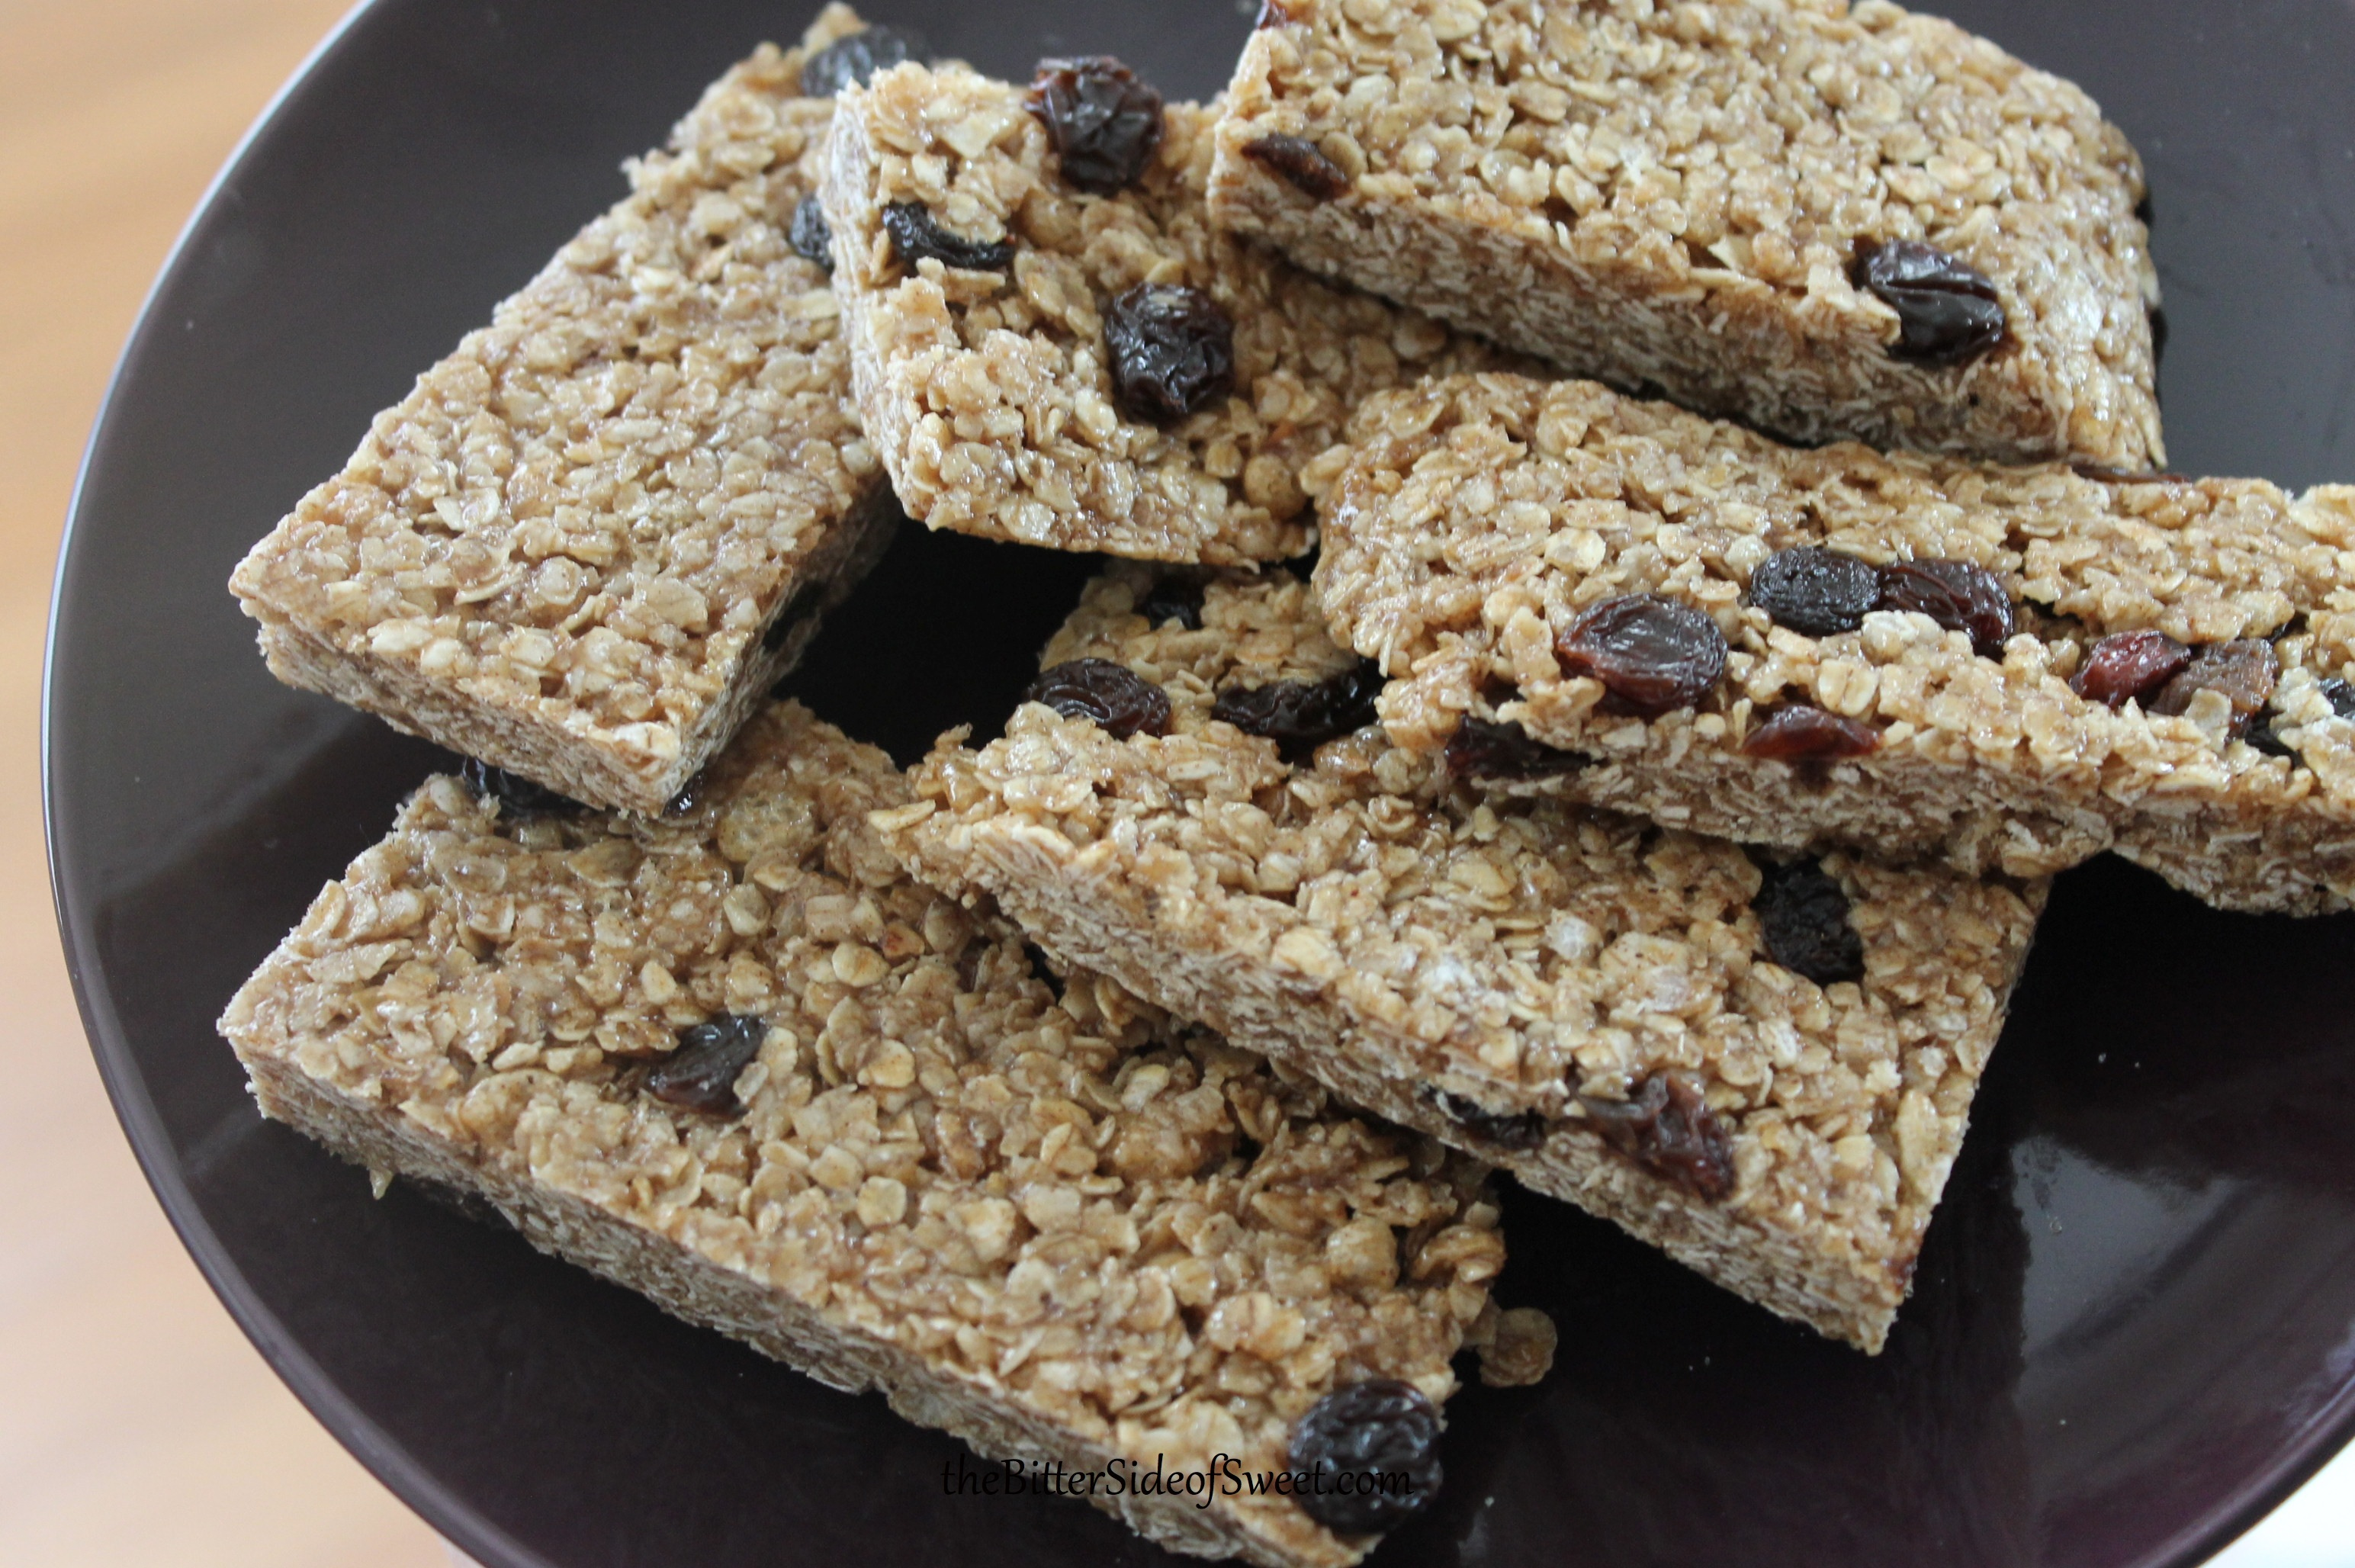 Cinnamon Raisin Granola Bars